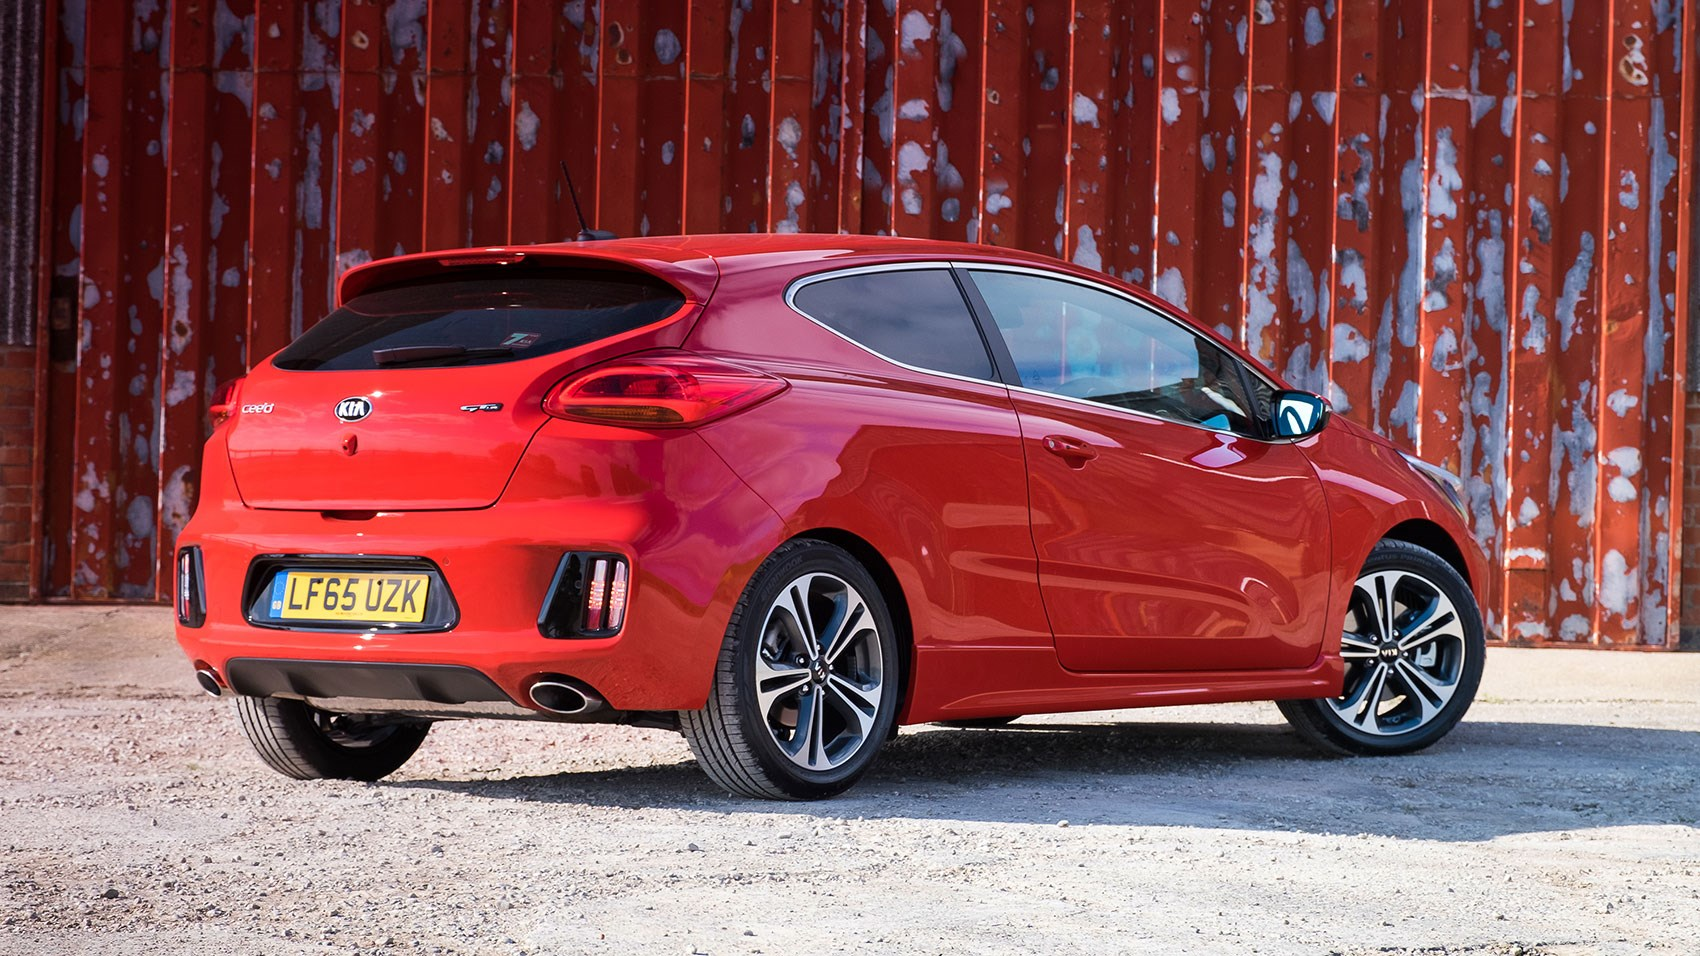 2018 kia proceed. simple kia kia proceed 10 tgdi gtline 2016 review  intended 2018 kia proceed